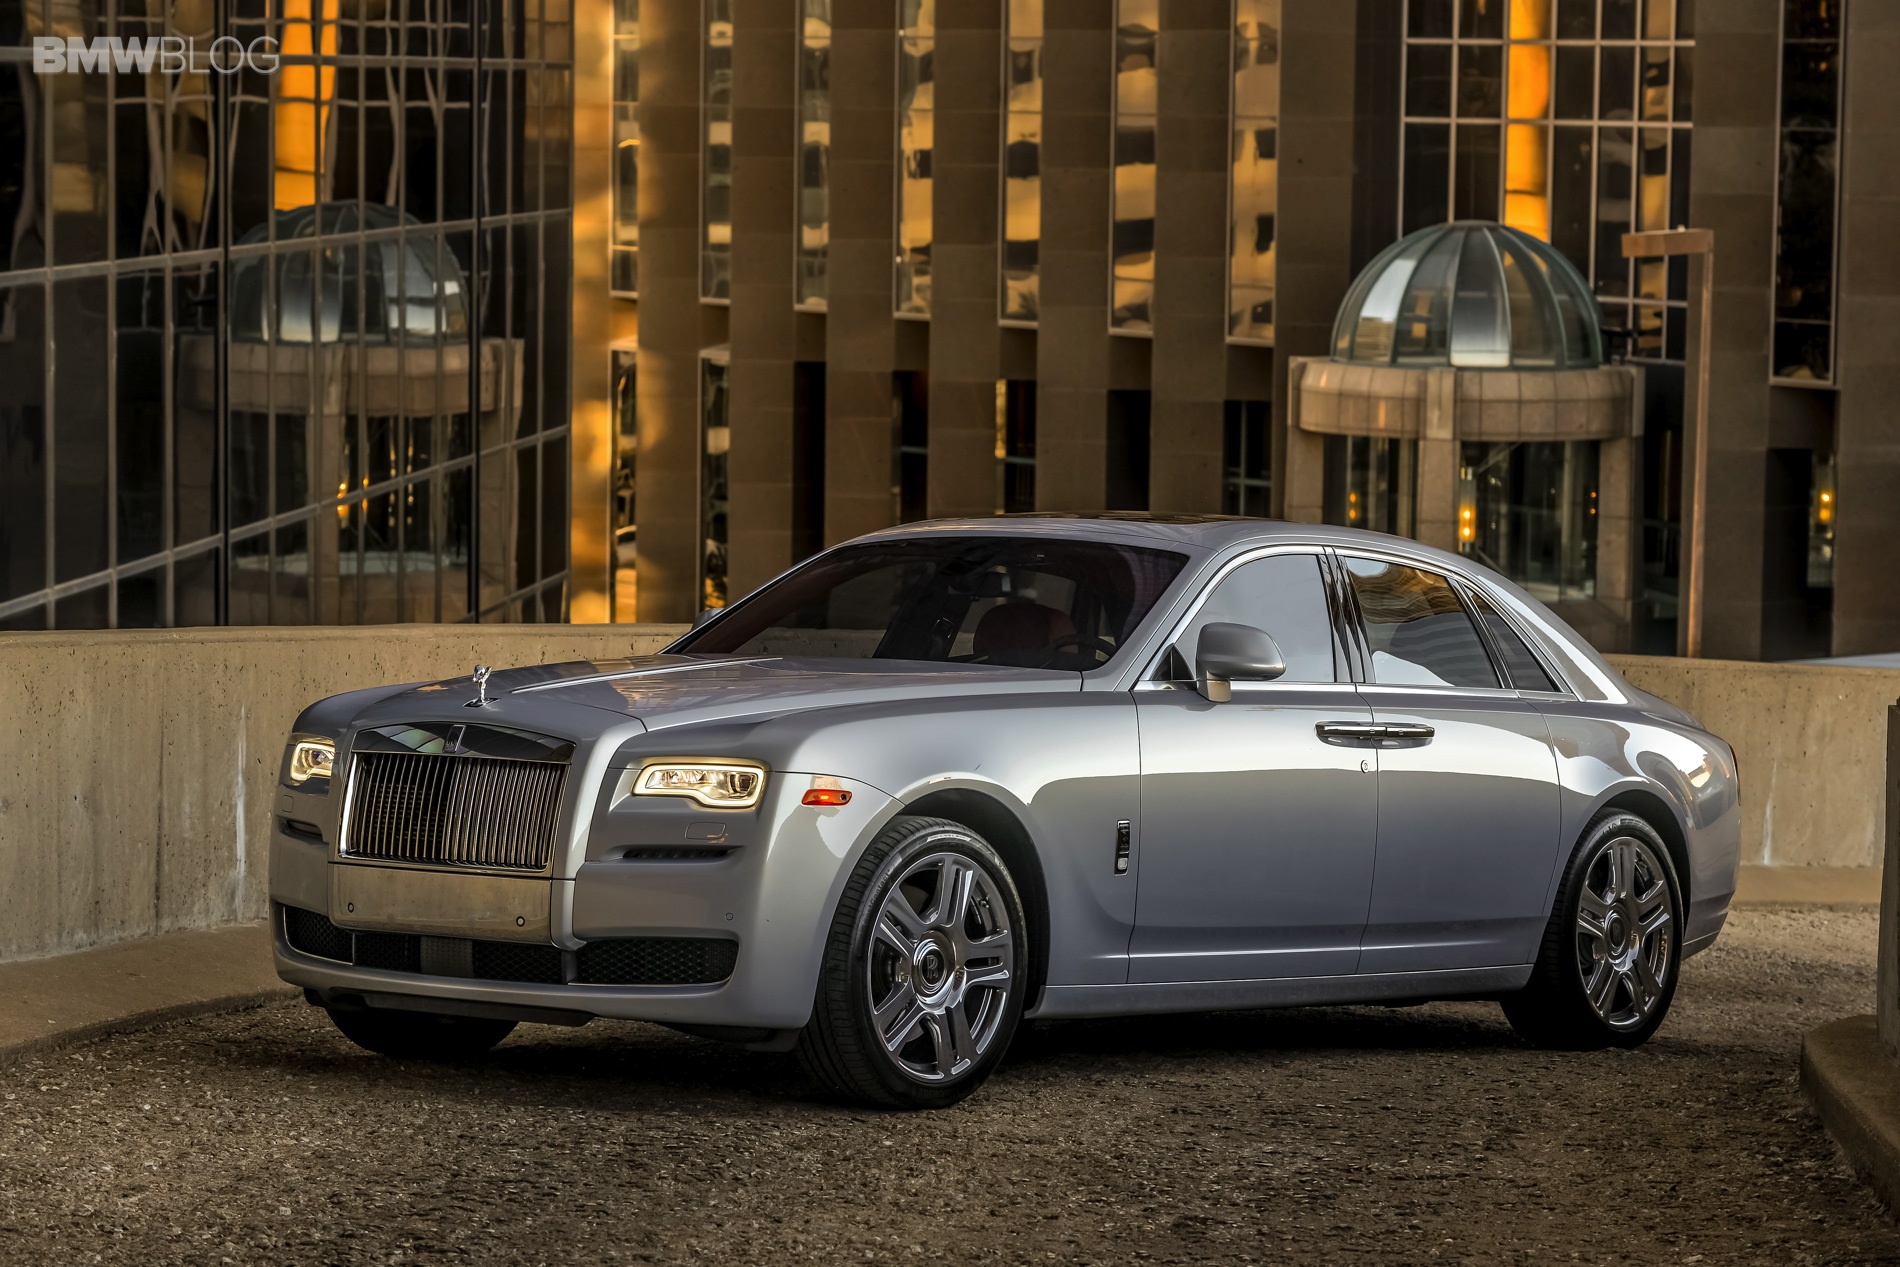 2015 Rolls royce Ghost Series Ii #10